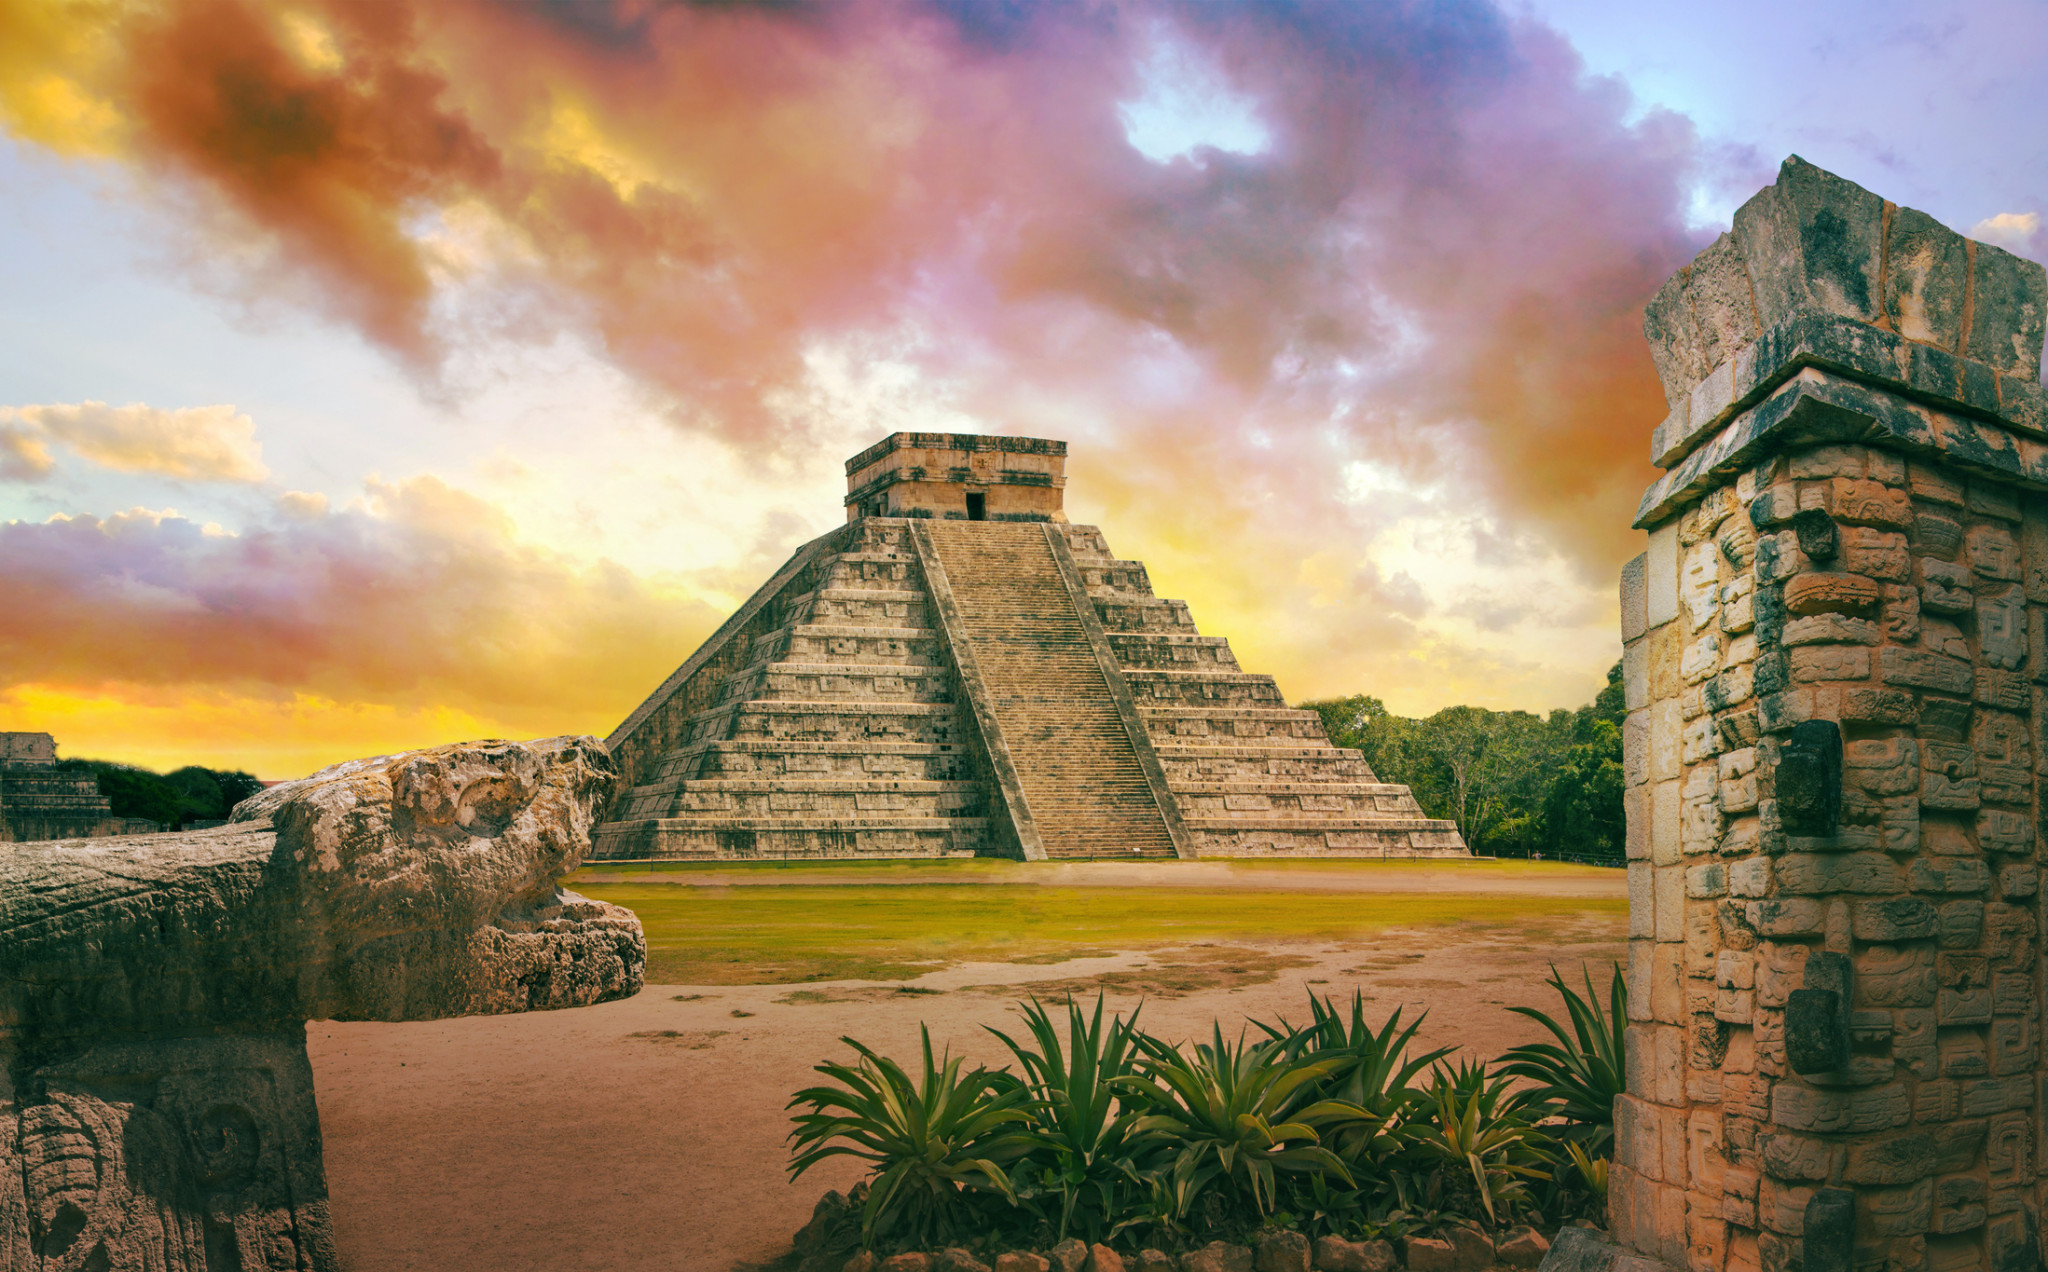 Visiting Chichen Itza, day trip from Cancun, Mexico.